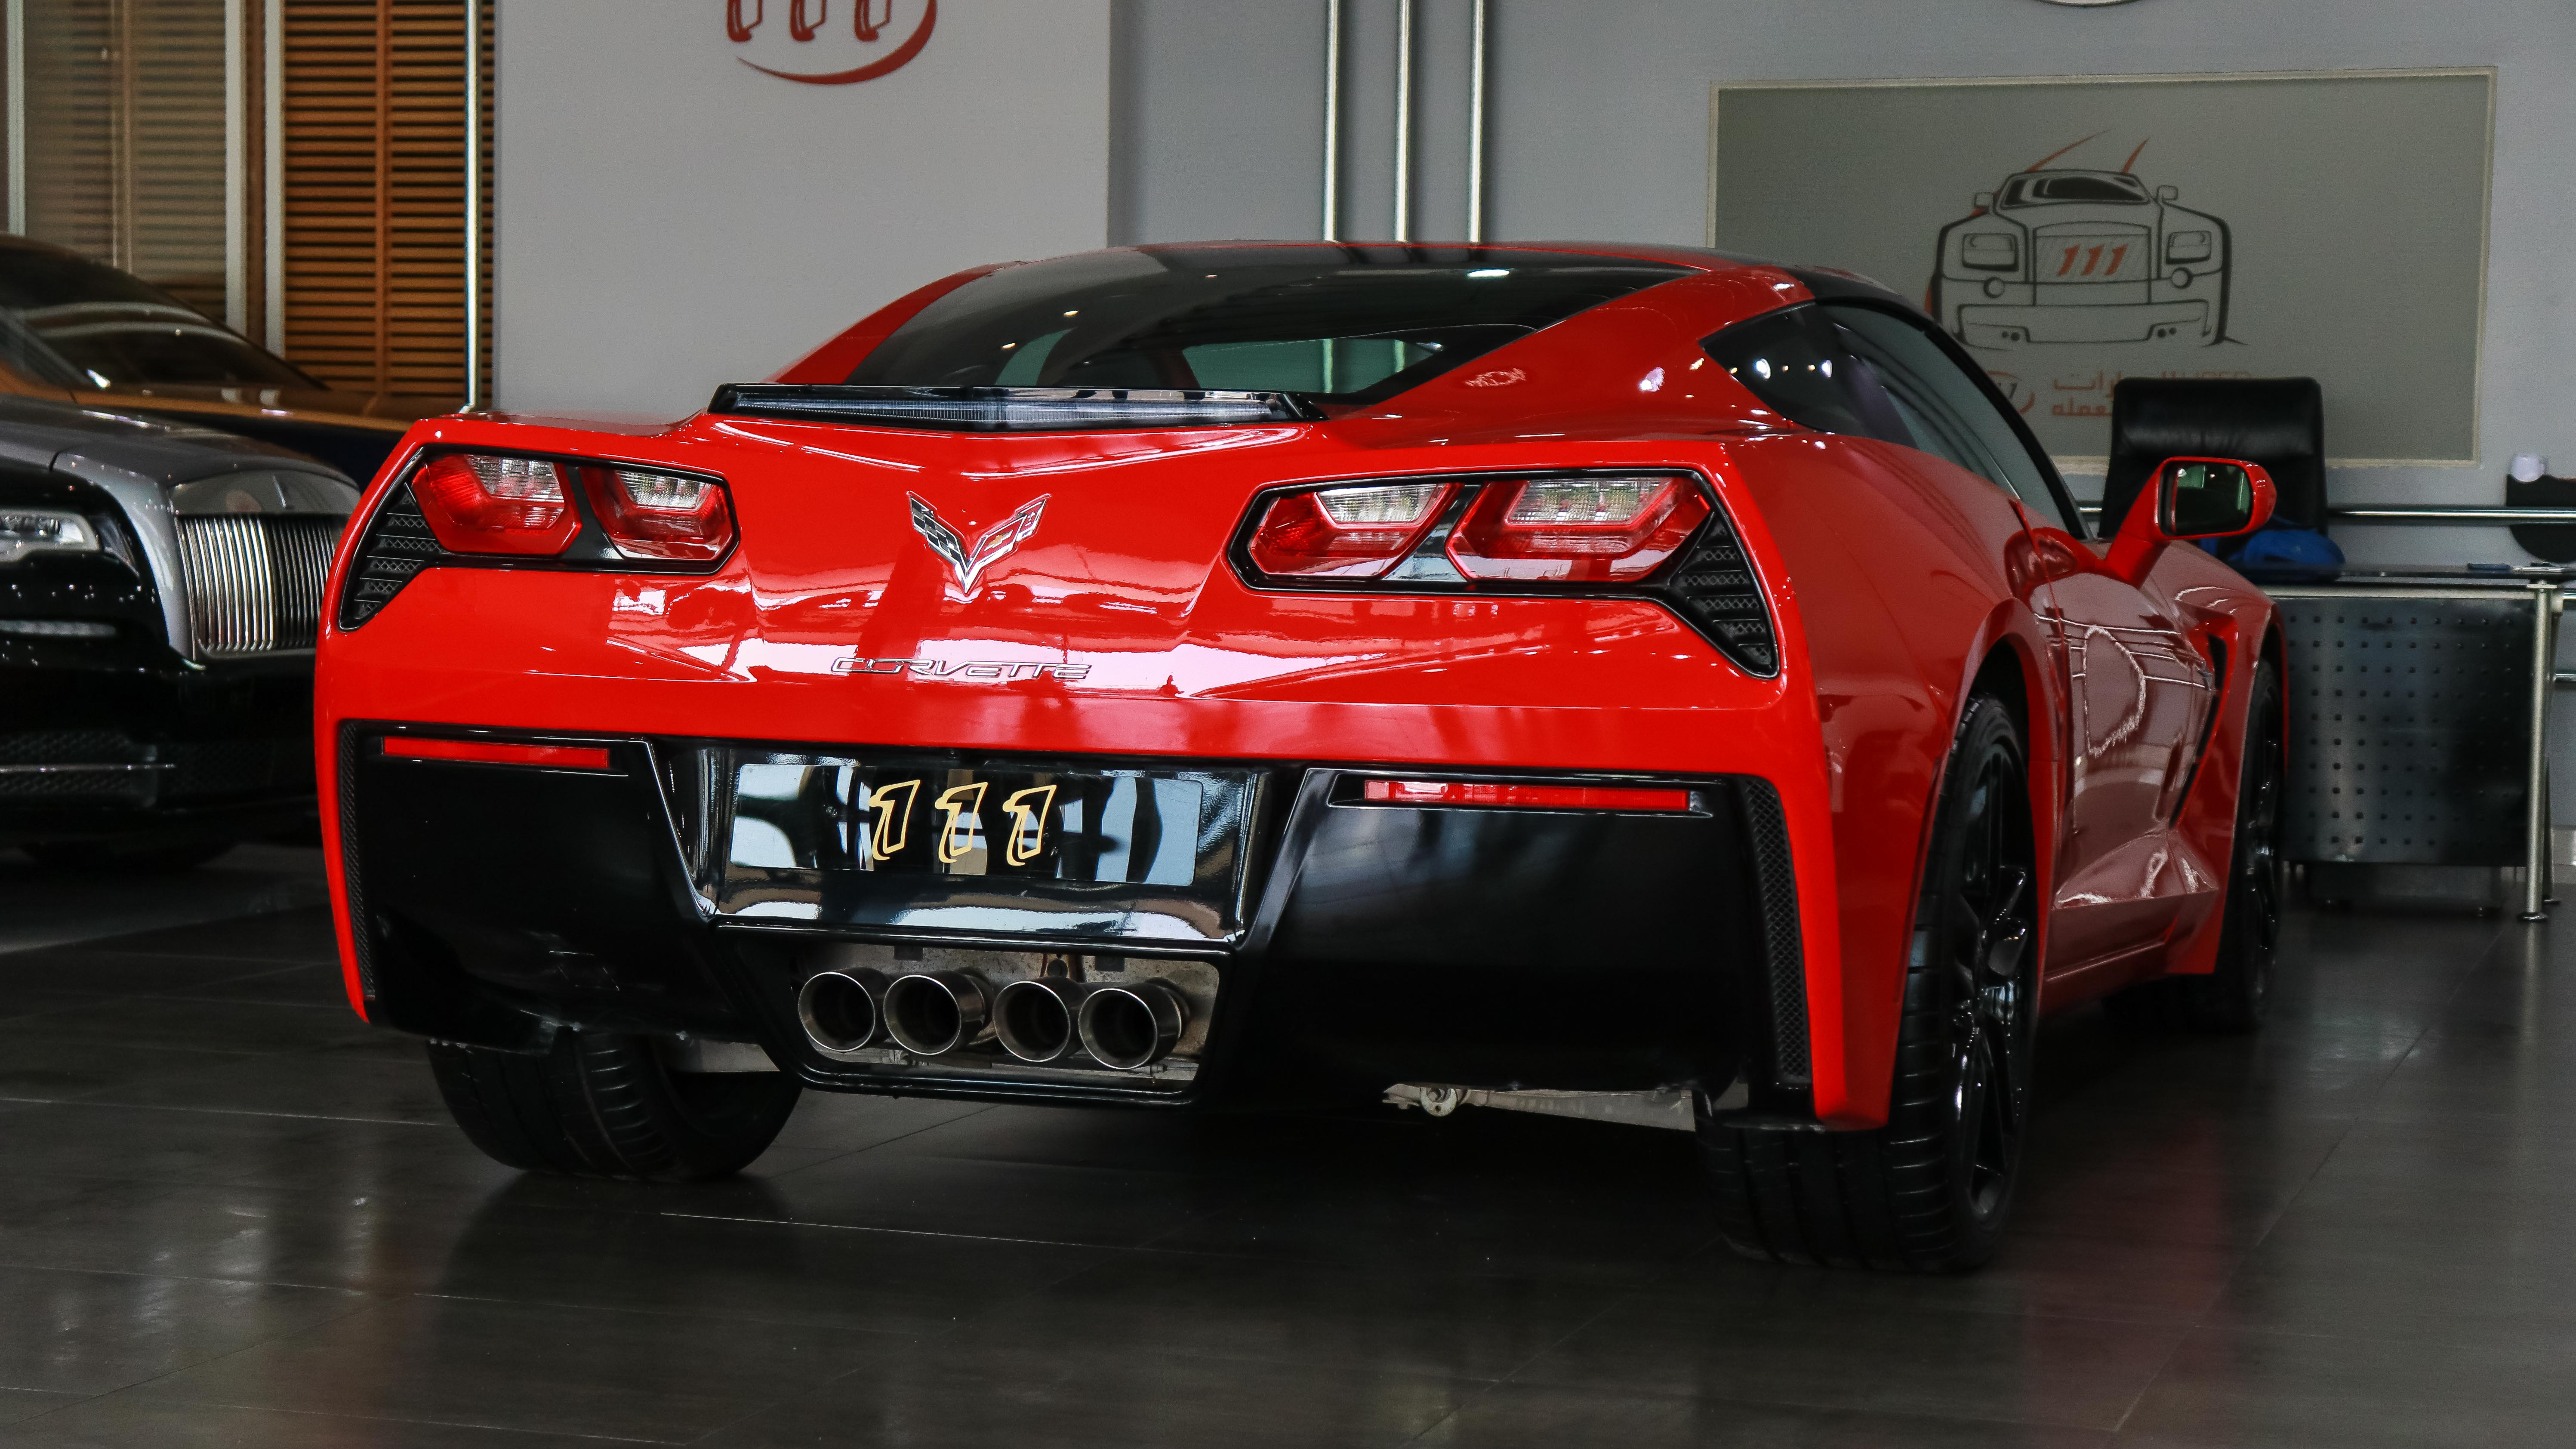 2019-Chevrolet-Corvette-Stingray-6.2-L-V8-Red-Red-import-09.jpg